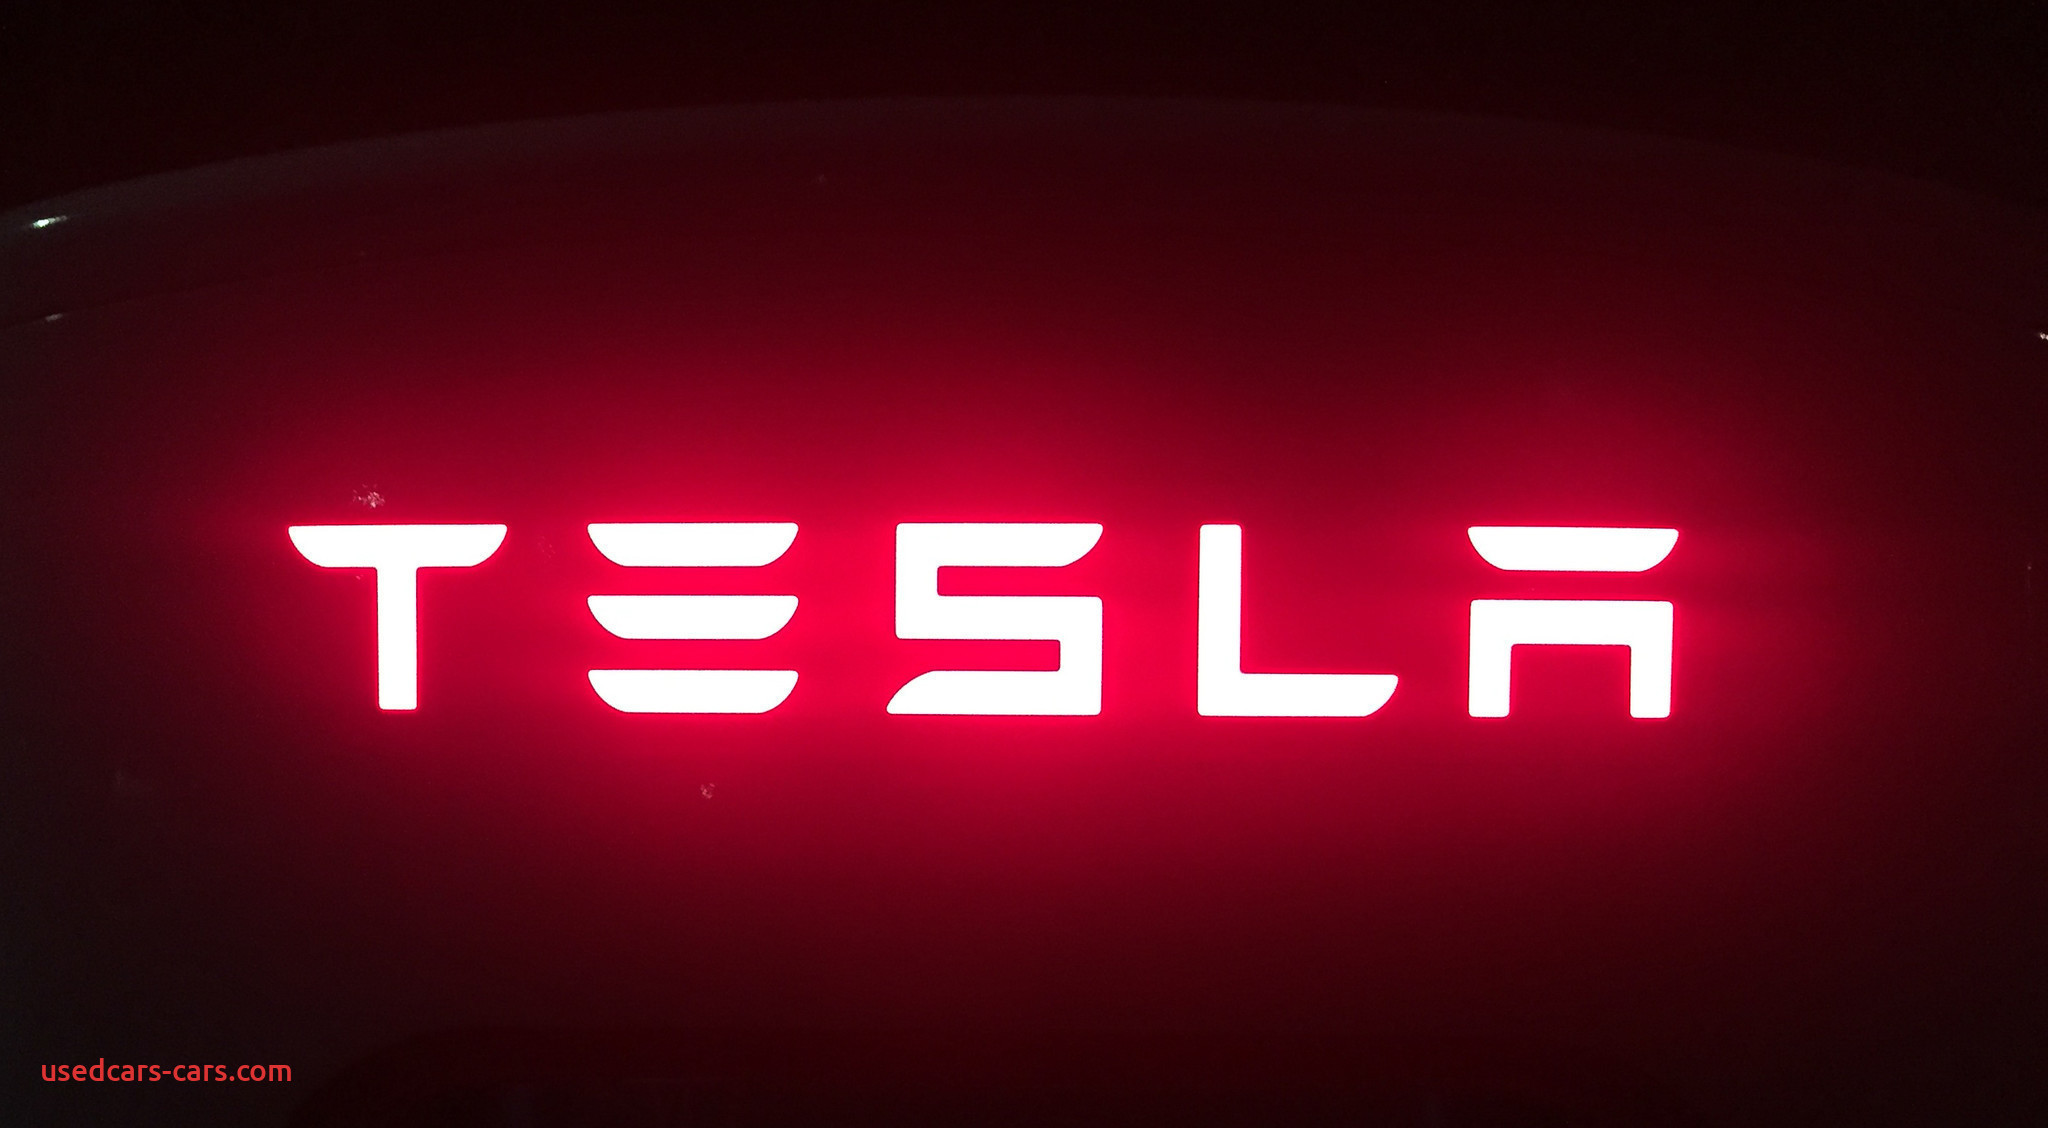 Tesla 4th Quarter Earnings Elegant Tesla Reports Fourth Quarter and Full Year Results Says